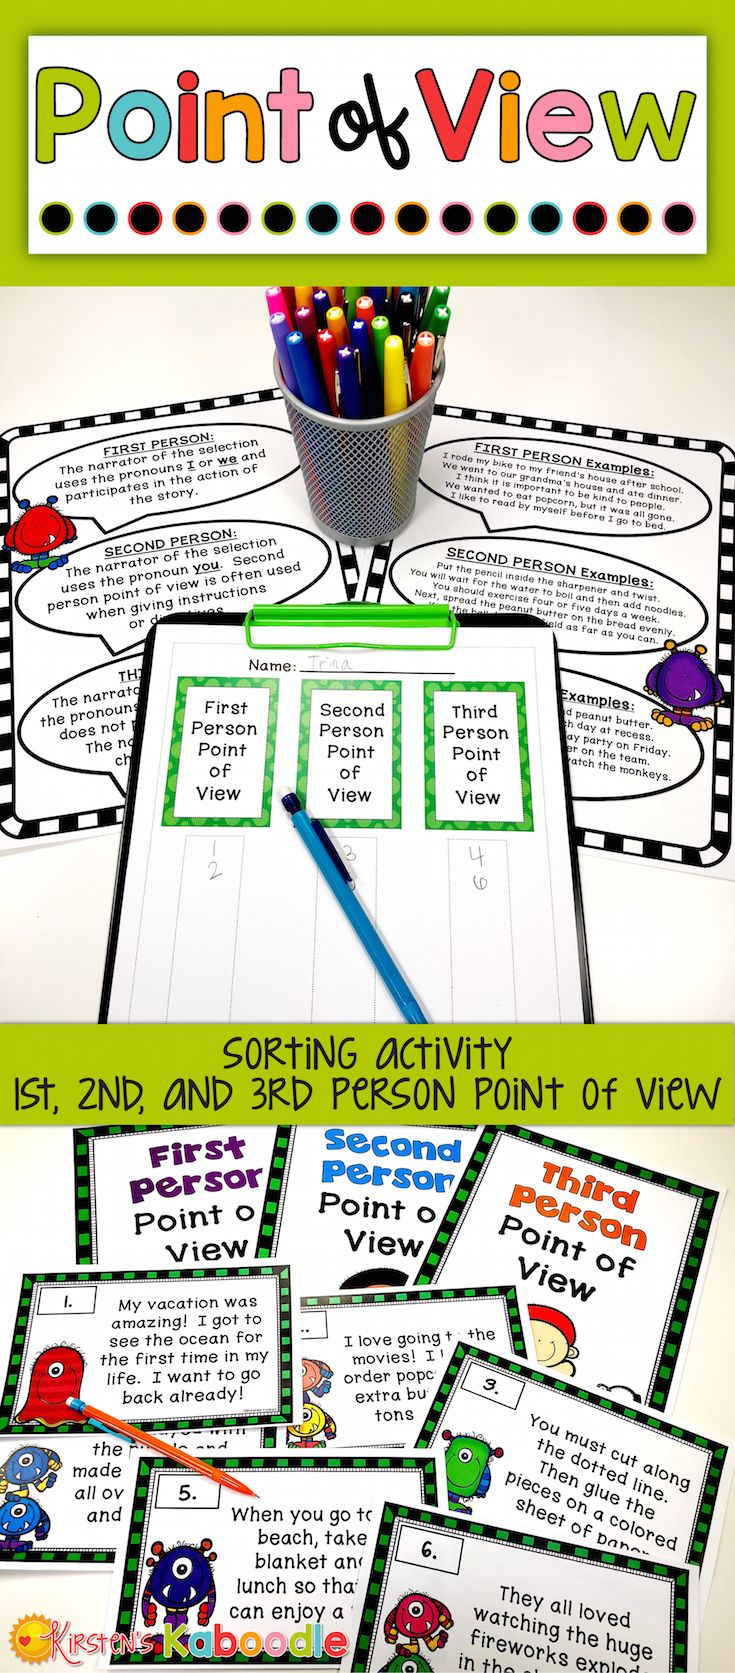 Point Of View Practice Sorting Activity For 1st 2nd